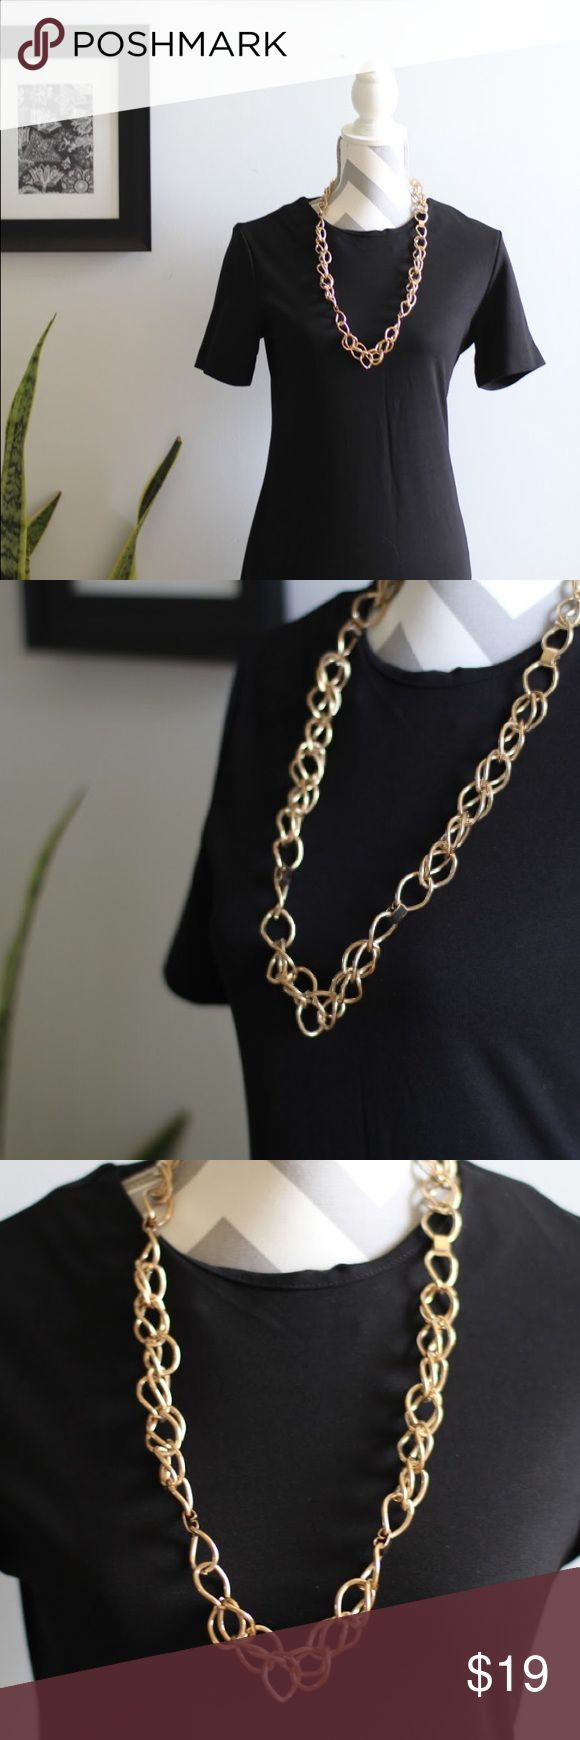 Chunky Gold Necklace Love this chunky gold piece; can style it in so many ways with so many outfits! Jewelry Necklaces